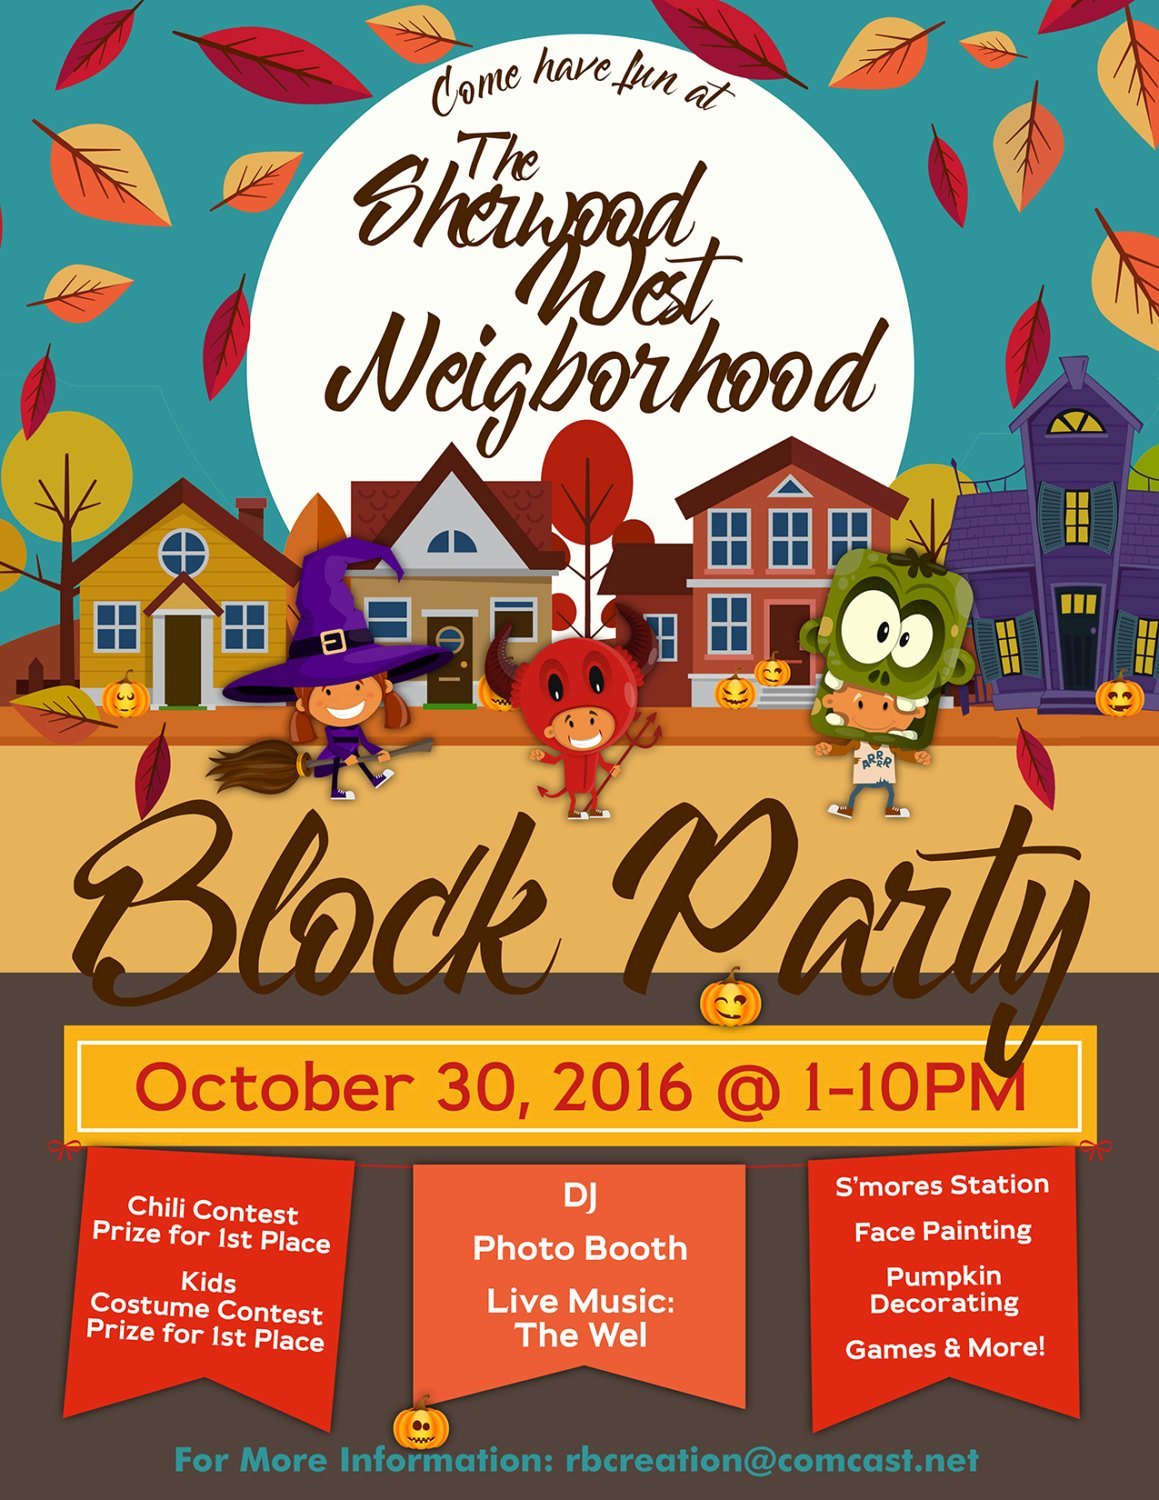 Block Party Flyer Template Beautiful Block Party Flyer Halloween Fall Flyer Autumn Flyer Truck